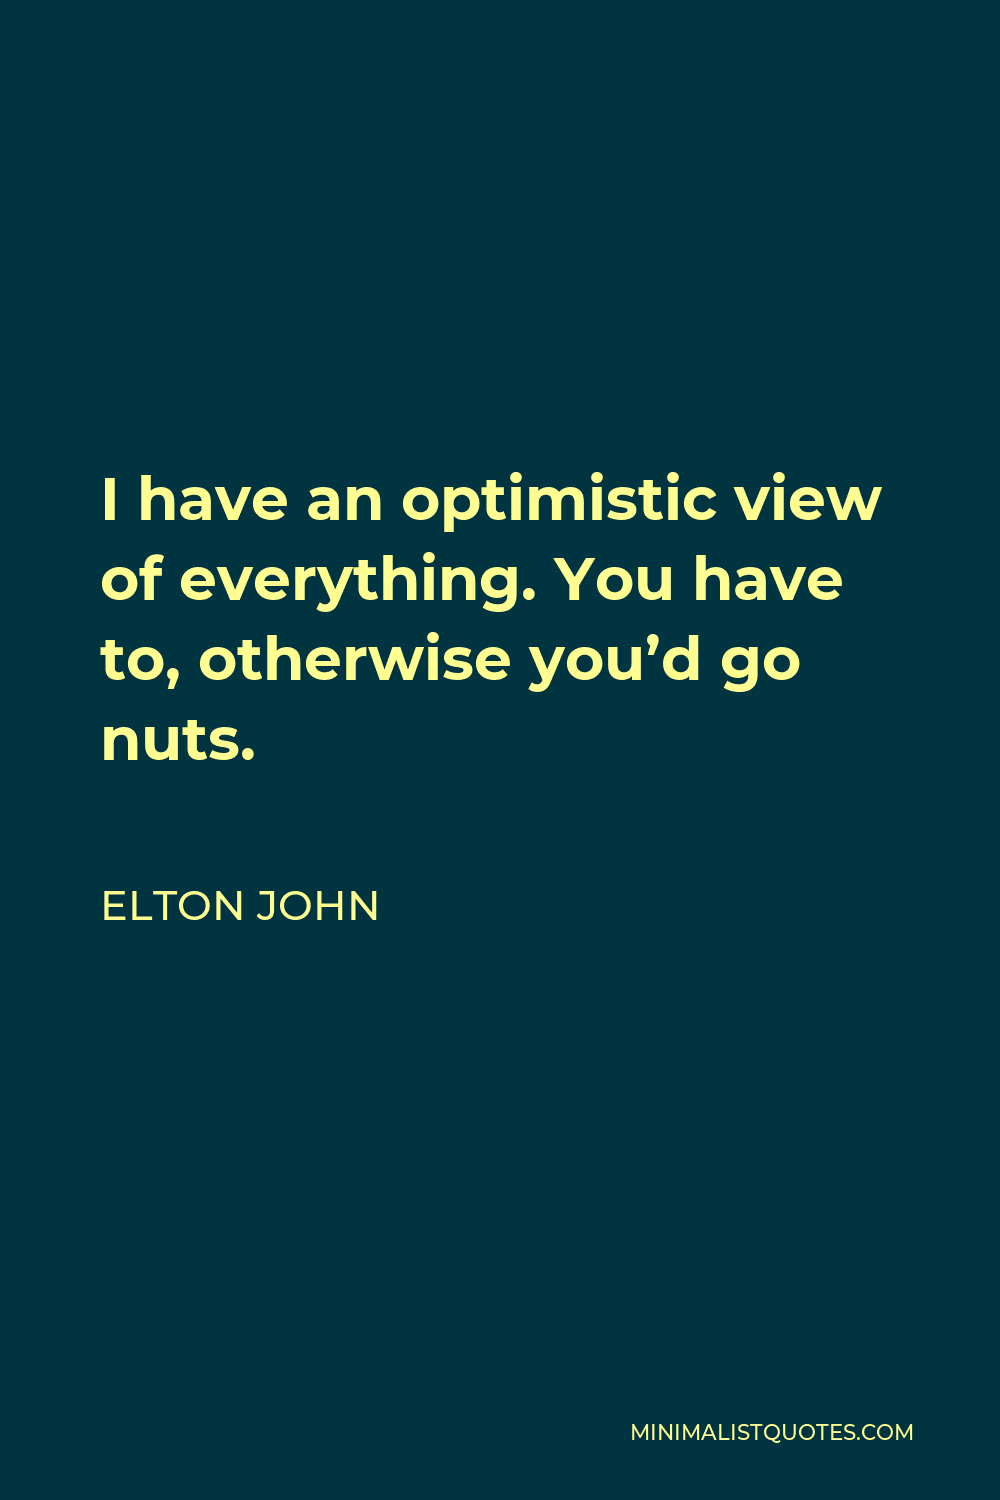 Elton John Quote - I have an optimistic view of everything. You have to, otherwise you'd go nuts.